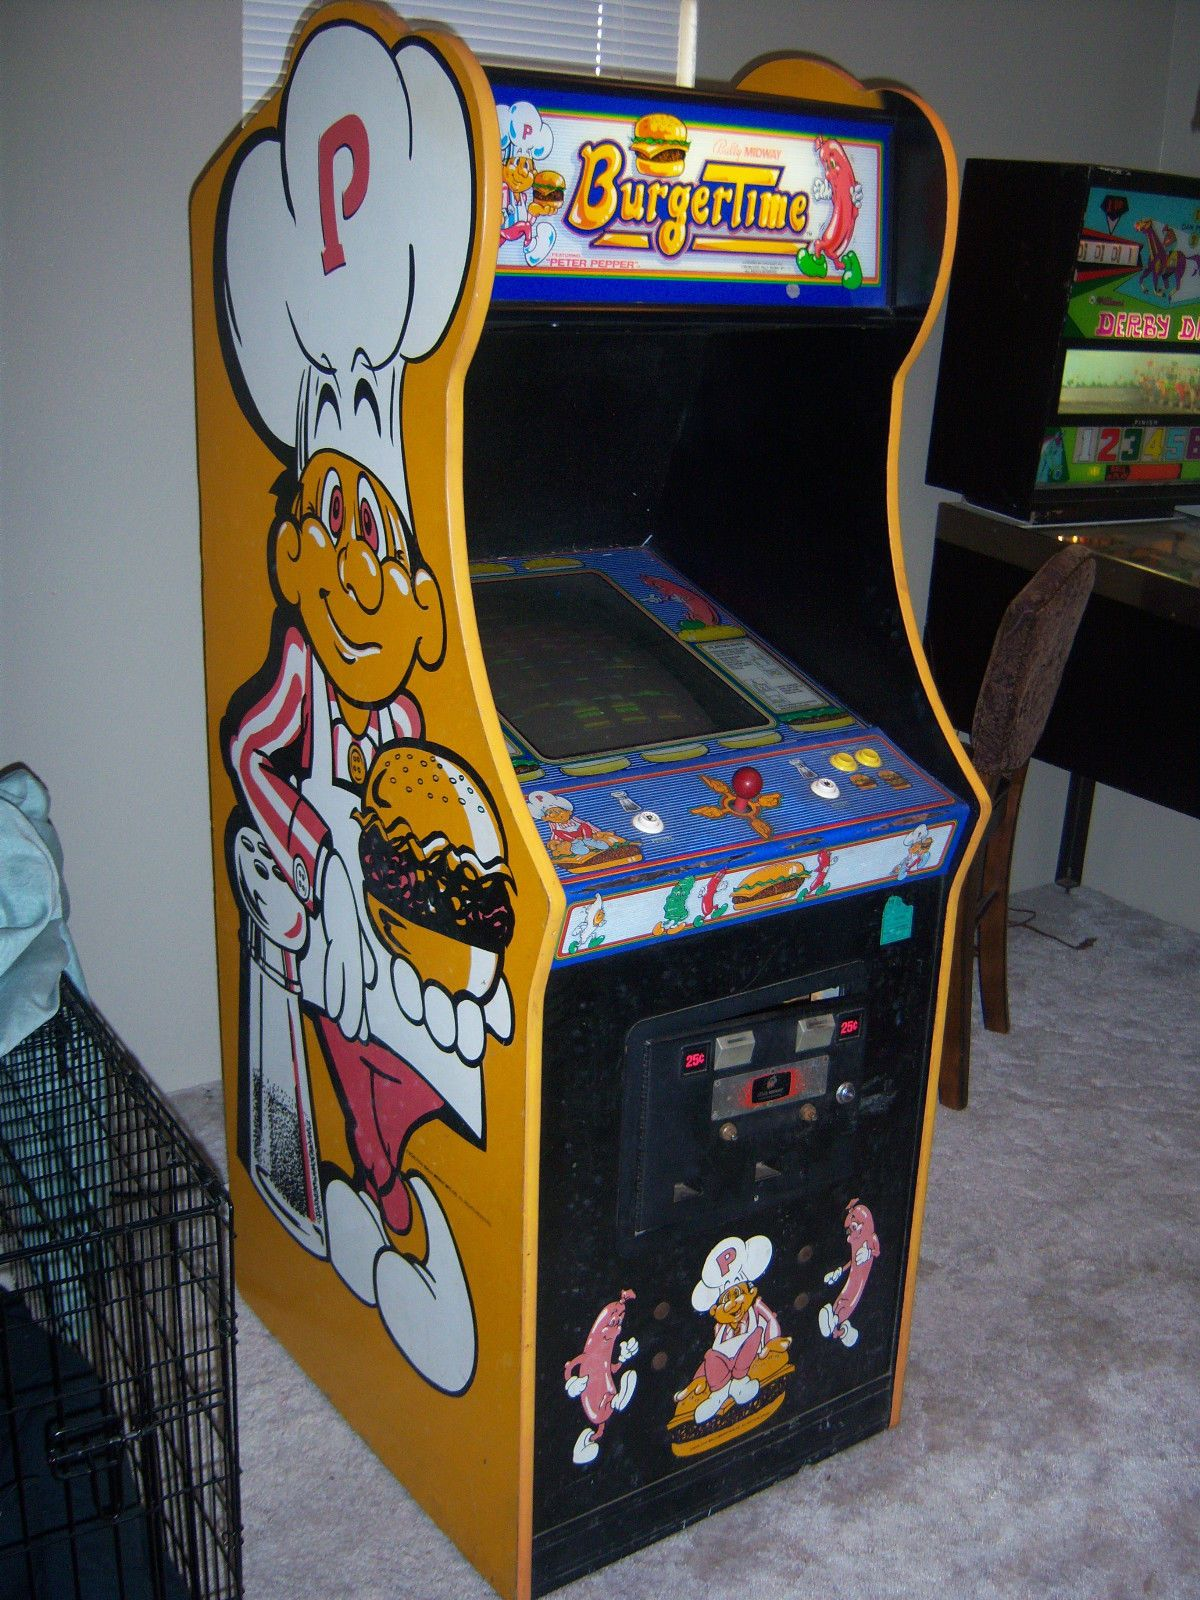 Vintage 1982 Midway Burger Time Stand Up Cabinet Arcade Game ...